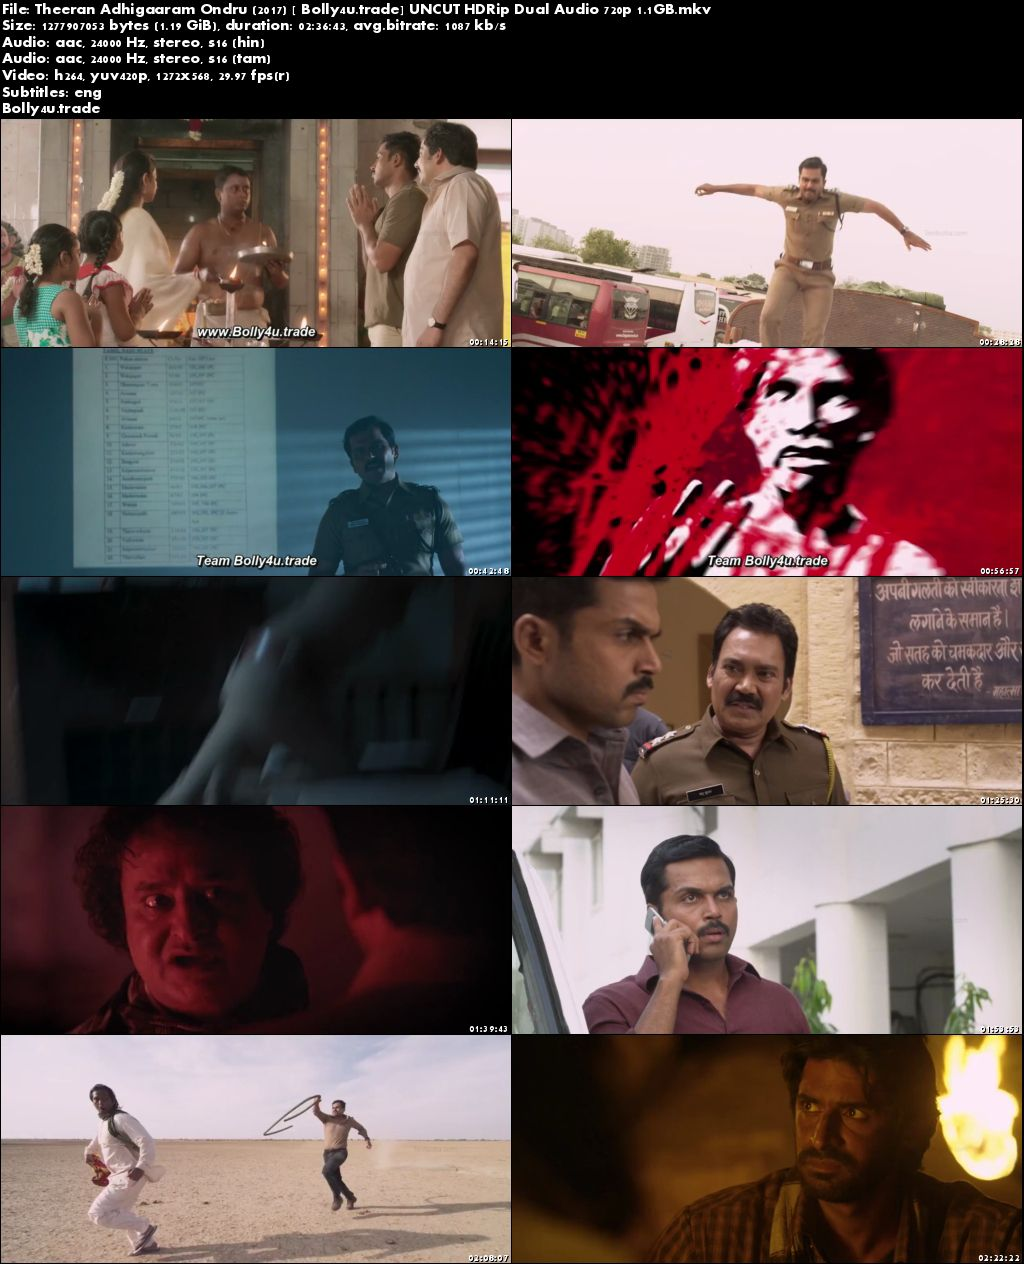 Theeran Adhigaaram Ondru 2017 HDRip 500MB UNCUT Hindi Dual Audio 480p Download